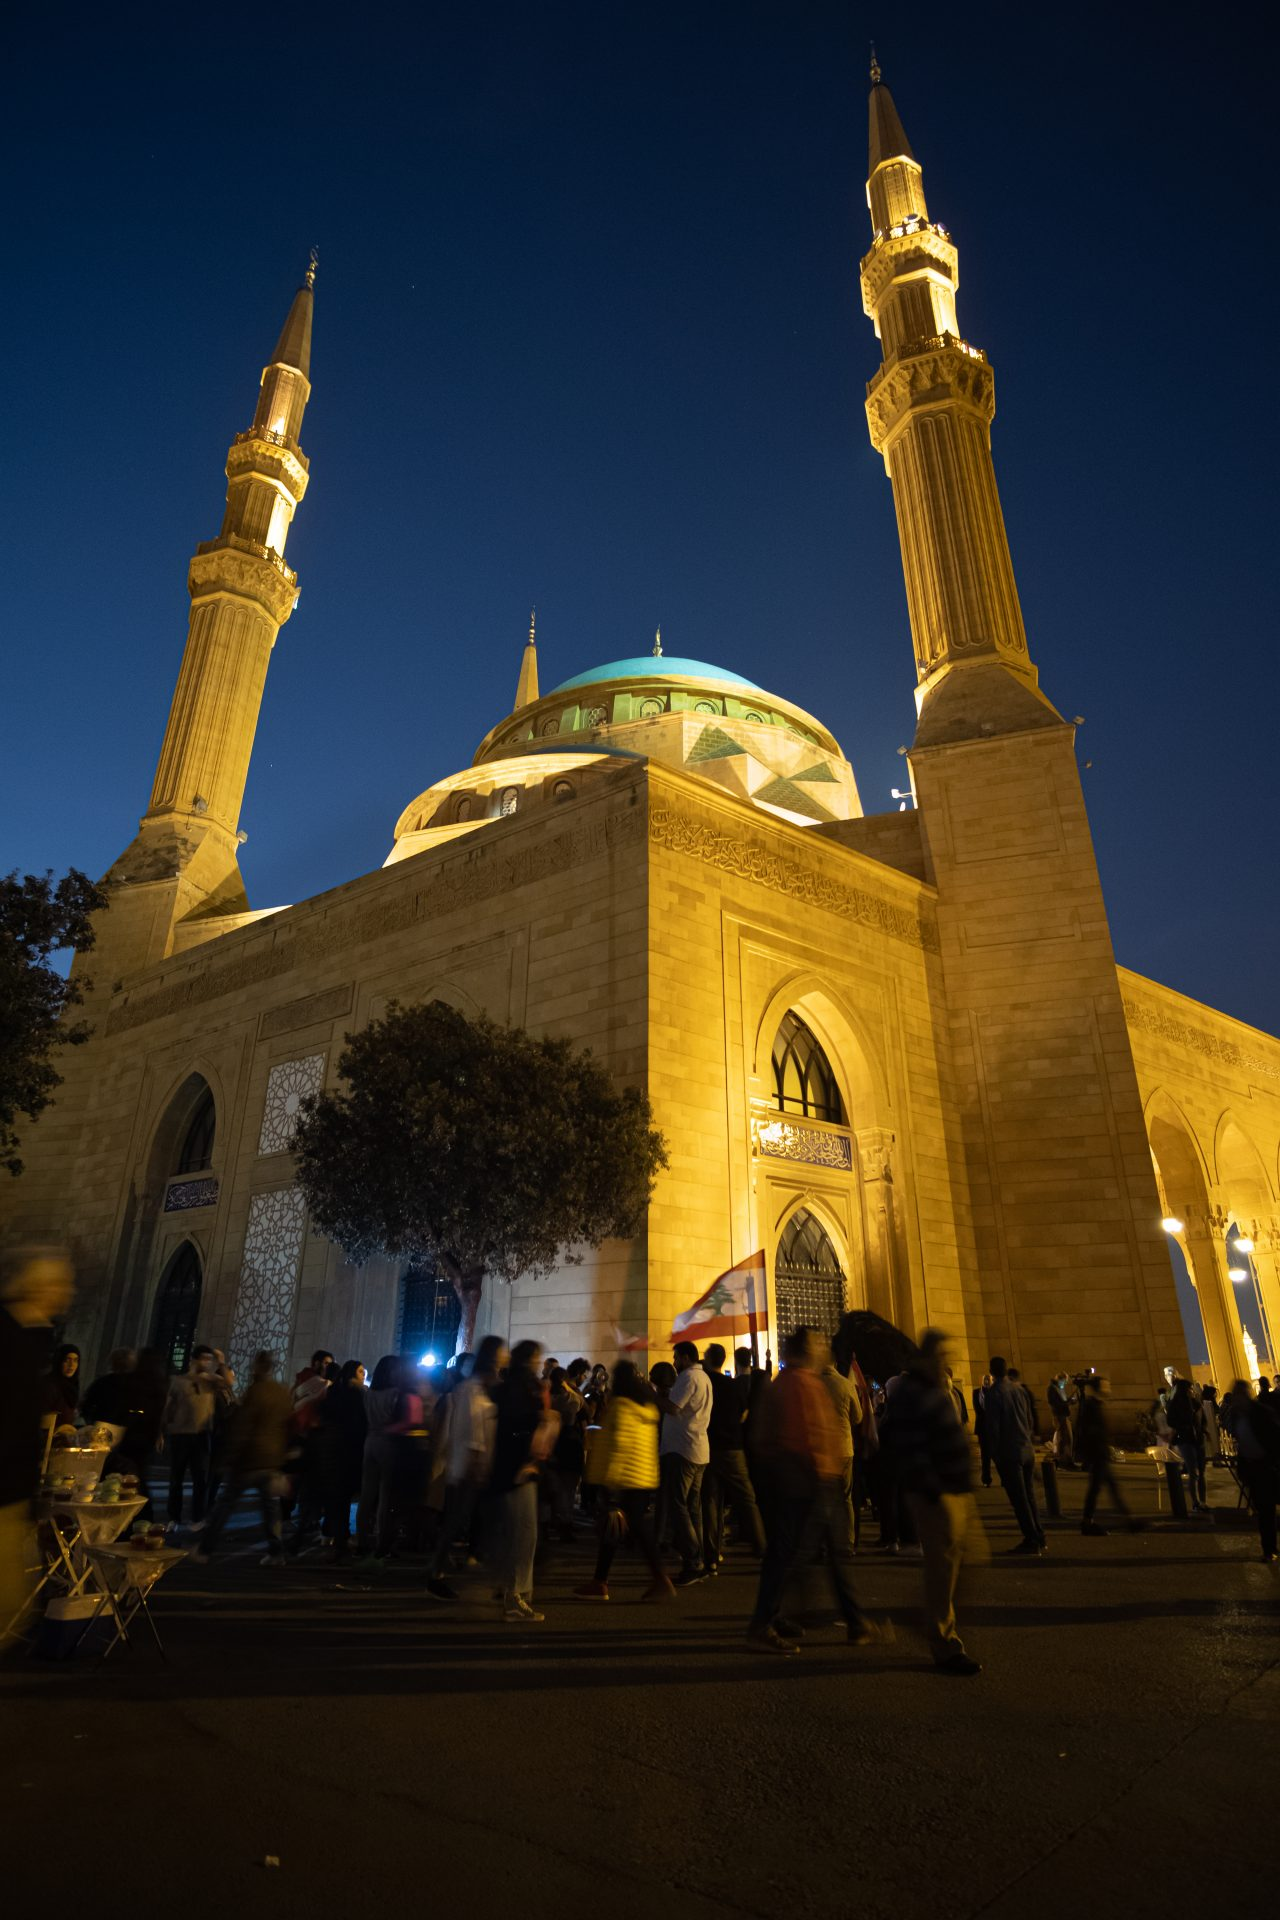 Al Amin mosque in Beirut Lebanon Photo by Jo Kassis